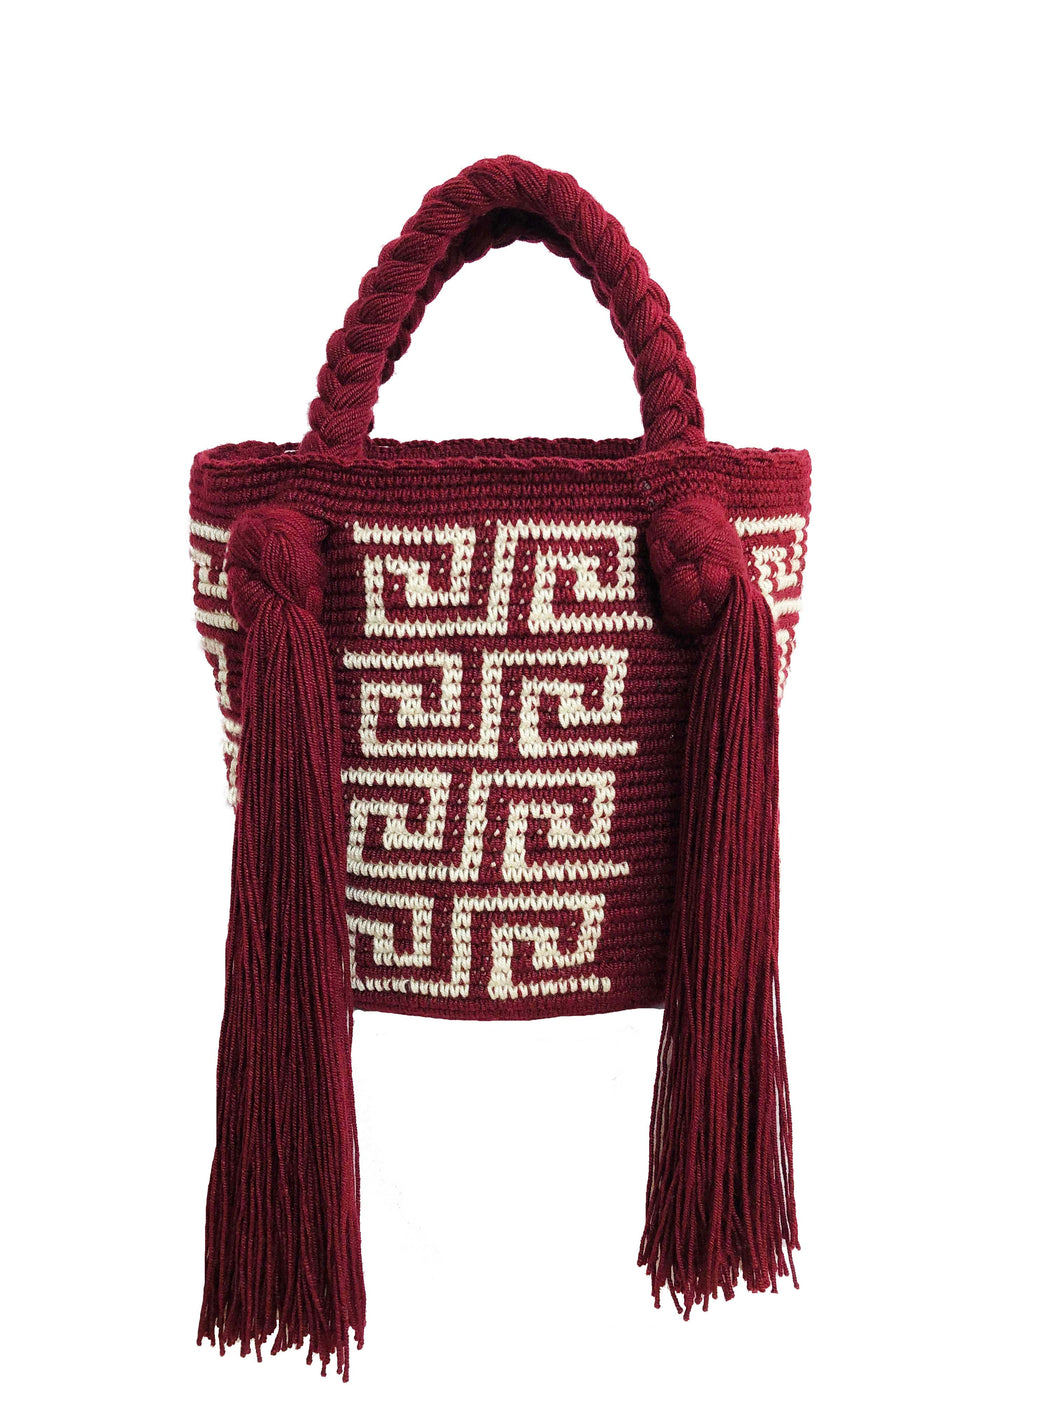 Burgundy Mini Bag - JETLAGMODE